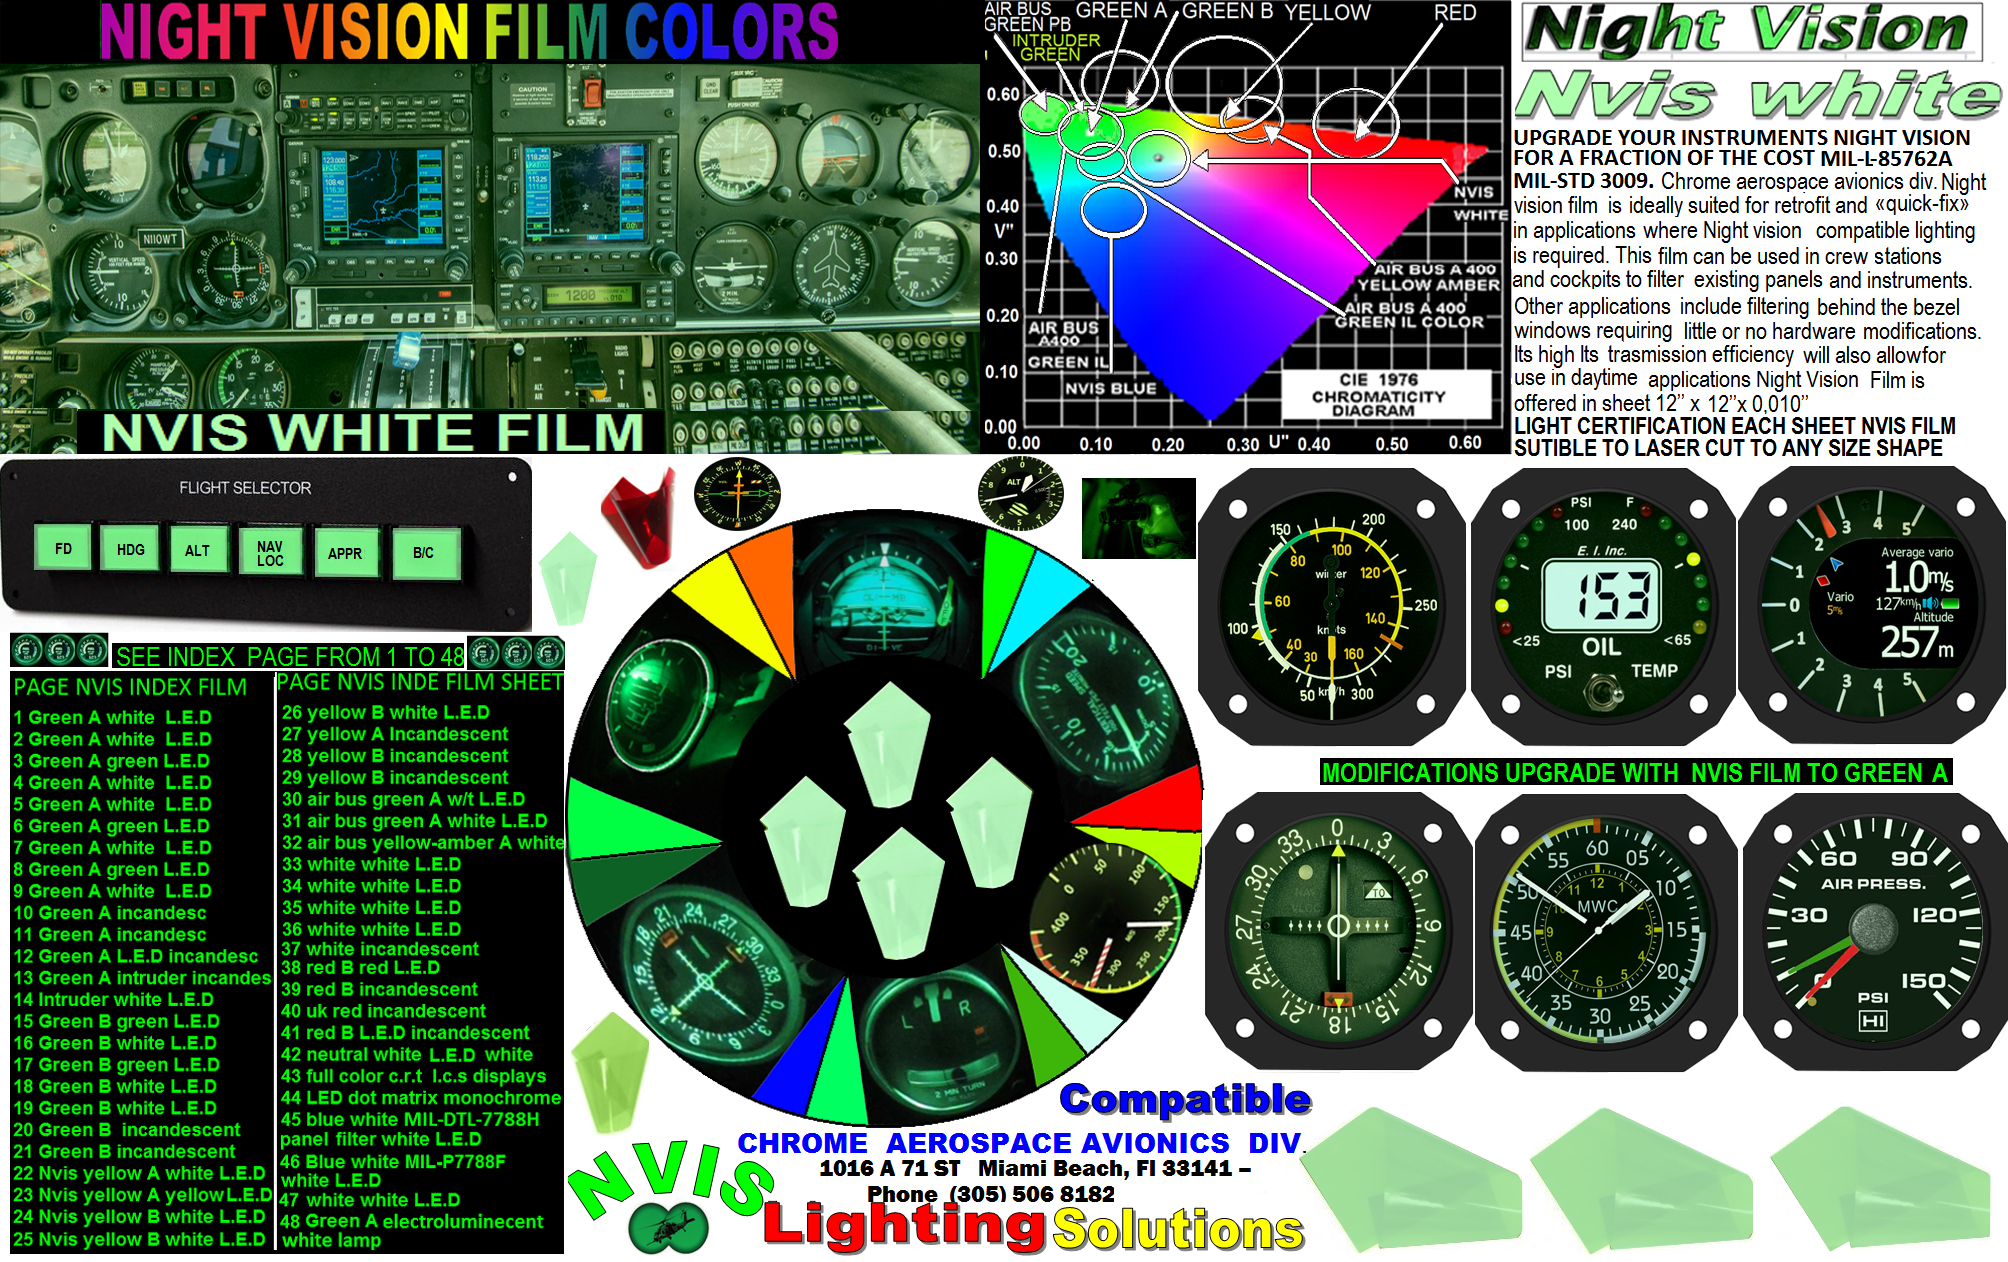 3 NVIS NVIS WHITE FILM UPGRADE CONVERSION INSTRUMENTS 330 SMD PLCC LED 955 SMD PLCC LED 955 SMD PLCC LED 955 LED 955 LED NVIS  955 LED HELICOPTERS NIGHT VISION LIGHTING   955 NVIS FILTER 955 Night Vision Imaging Systems (NVIS)  955 NVIS Aircraft Upgrades | Night Vision Goggles 955 PILOT NIGHT VISION NVIS ILLUMINATION  955 LED SWITCHES, KEYBOARDS, DIALS, AND DISPLAYS 955 COCKPIT MODIFICATION 955 NVIS compatible lights 955 NVIS filters . NVG lighting 955 NVG lighting control panel customized 955 SMD LED  955 NVIS compatible lights  955 NVIS compatible lights CHIP  955 SMD LED NVIS  955 SMD LED NIGHT VISION  955 SMD PLCC LED AVIONICS 955 AVIONICS NIGHT VISION LIGHTING 955 AVIONICS MODIFICATIONS TO NIGHT VISION   955 LED AVIONICS UPGRADES TO NVIS 955 LED NVIS GREEN A 955 IMPACT SOLAR FILTER NVIS 955 LED NVIS GREEN B 955 LED NVIS WHITE  955 LED NVIS RED  955 LED AIRBUS A 400 GREEN 955-001 SMD PLCC LED 955-001 LED   955-001 LED NVIS  955-001 LED HELICOPTERS NIGHT VISION LIGHTING  955-001 NVIS FILTER 955-001 Night Vision Imaging Systems (NVIS) 955-001 PILOT NIGHT VISION NVIS ILLUMINATION  955-001 NVIS Aircraft Upgrades | Night Vision Goggles  955-001 LED SWITCHES, KEYBOARDS, DIALS, AND DISPLAYS 955-001 COCKPIT MODIFICATION  955-001 NVIS compatible lights    955-001 NVIS filters . NVG lighting  955-001 NVG lighting control panel customized   955-001 SMD LED 955-001 NVIS compatible lights  955-001 NVIS compatible lights CHIP 955-001 SMD LED NVIS 955-001 SMD LED NIGHT VISION 955-001 SMD PLCC LED AVIONICS 955-001 AVIONICS NIGHT VISION LIGHTING 955-001 AVIONICS MODIFICATIONS TO NIGHT VISION 955-001 LED AVIONICS UPGRADES TO NVIS 955-001 LED NVIS GREEN A 955-001 IMPACT SOLAR FILTER NVIS 955-001 LED NVIS GREEN B 955-001 LED NVIS WHITE 955-001 LED NVIS RED 955-001 LED AIRBUS A 400 GREEN  670 SMD LED  670 NVG lighting control panel customized  670 NVIS filters . NVG lighting